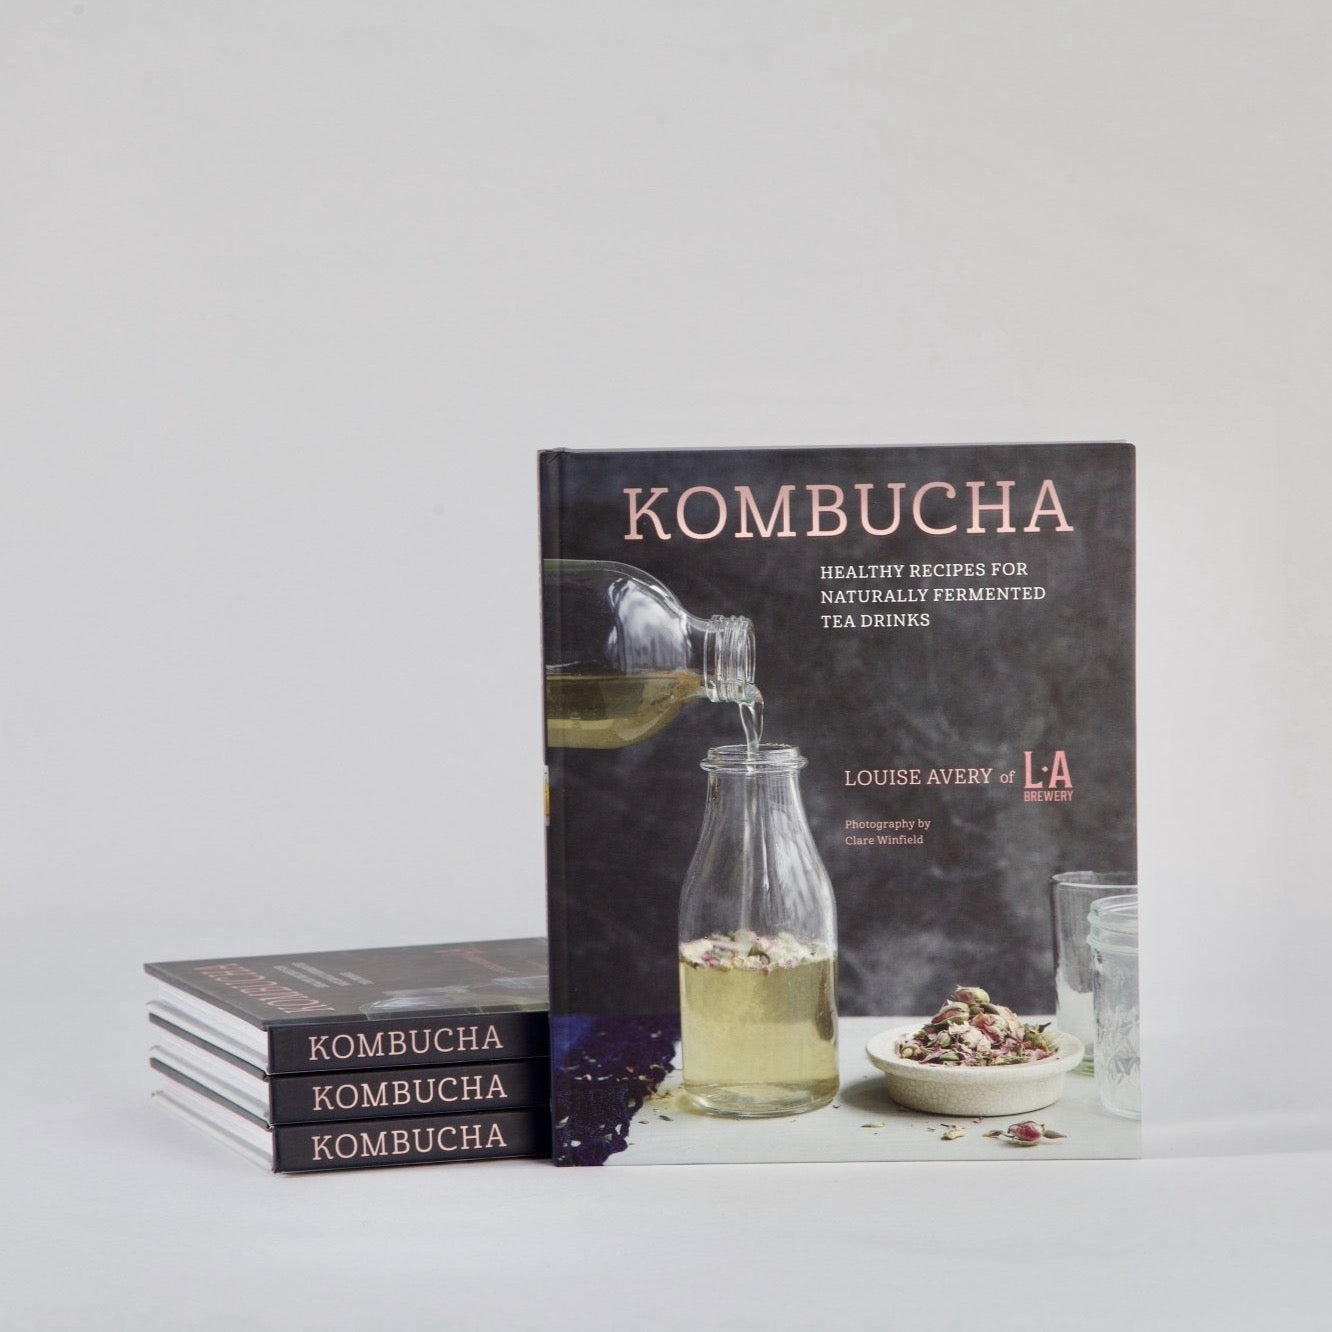 Kombucha | Healthy Recipes for Naturally Fermented Tea Drinks - THE HOME OF SUSTAINABLE THINGS